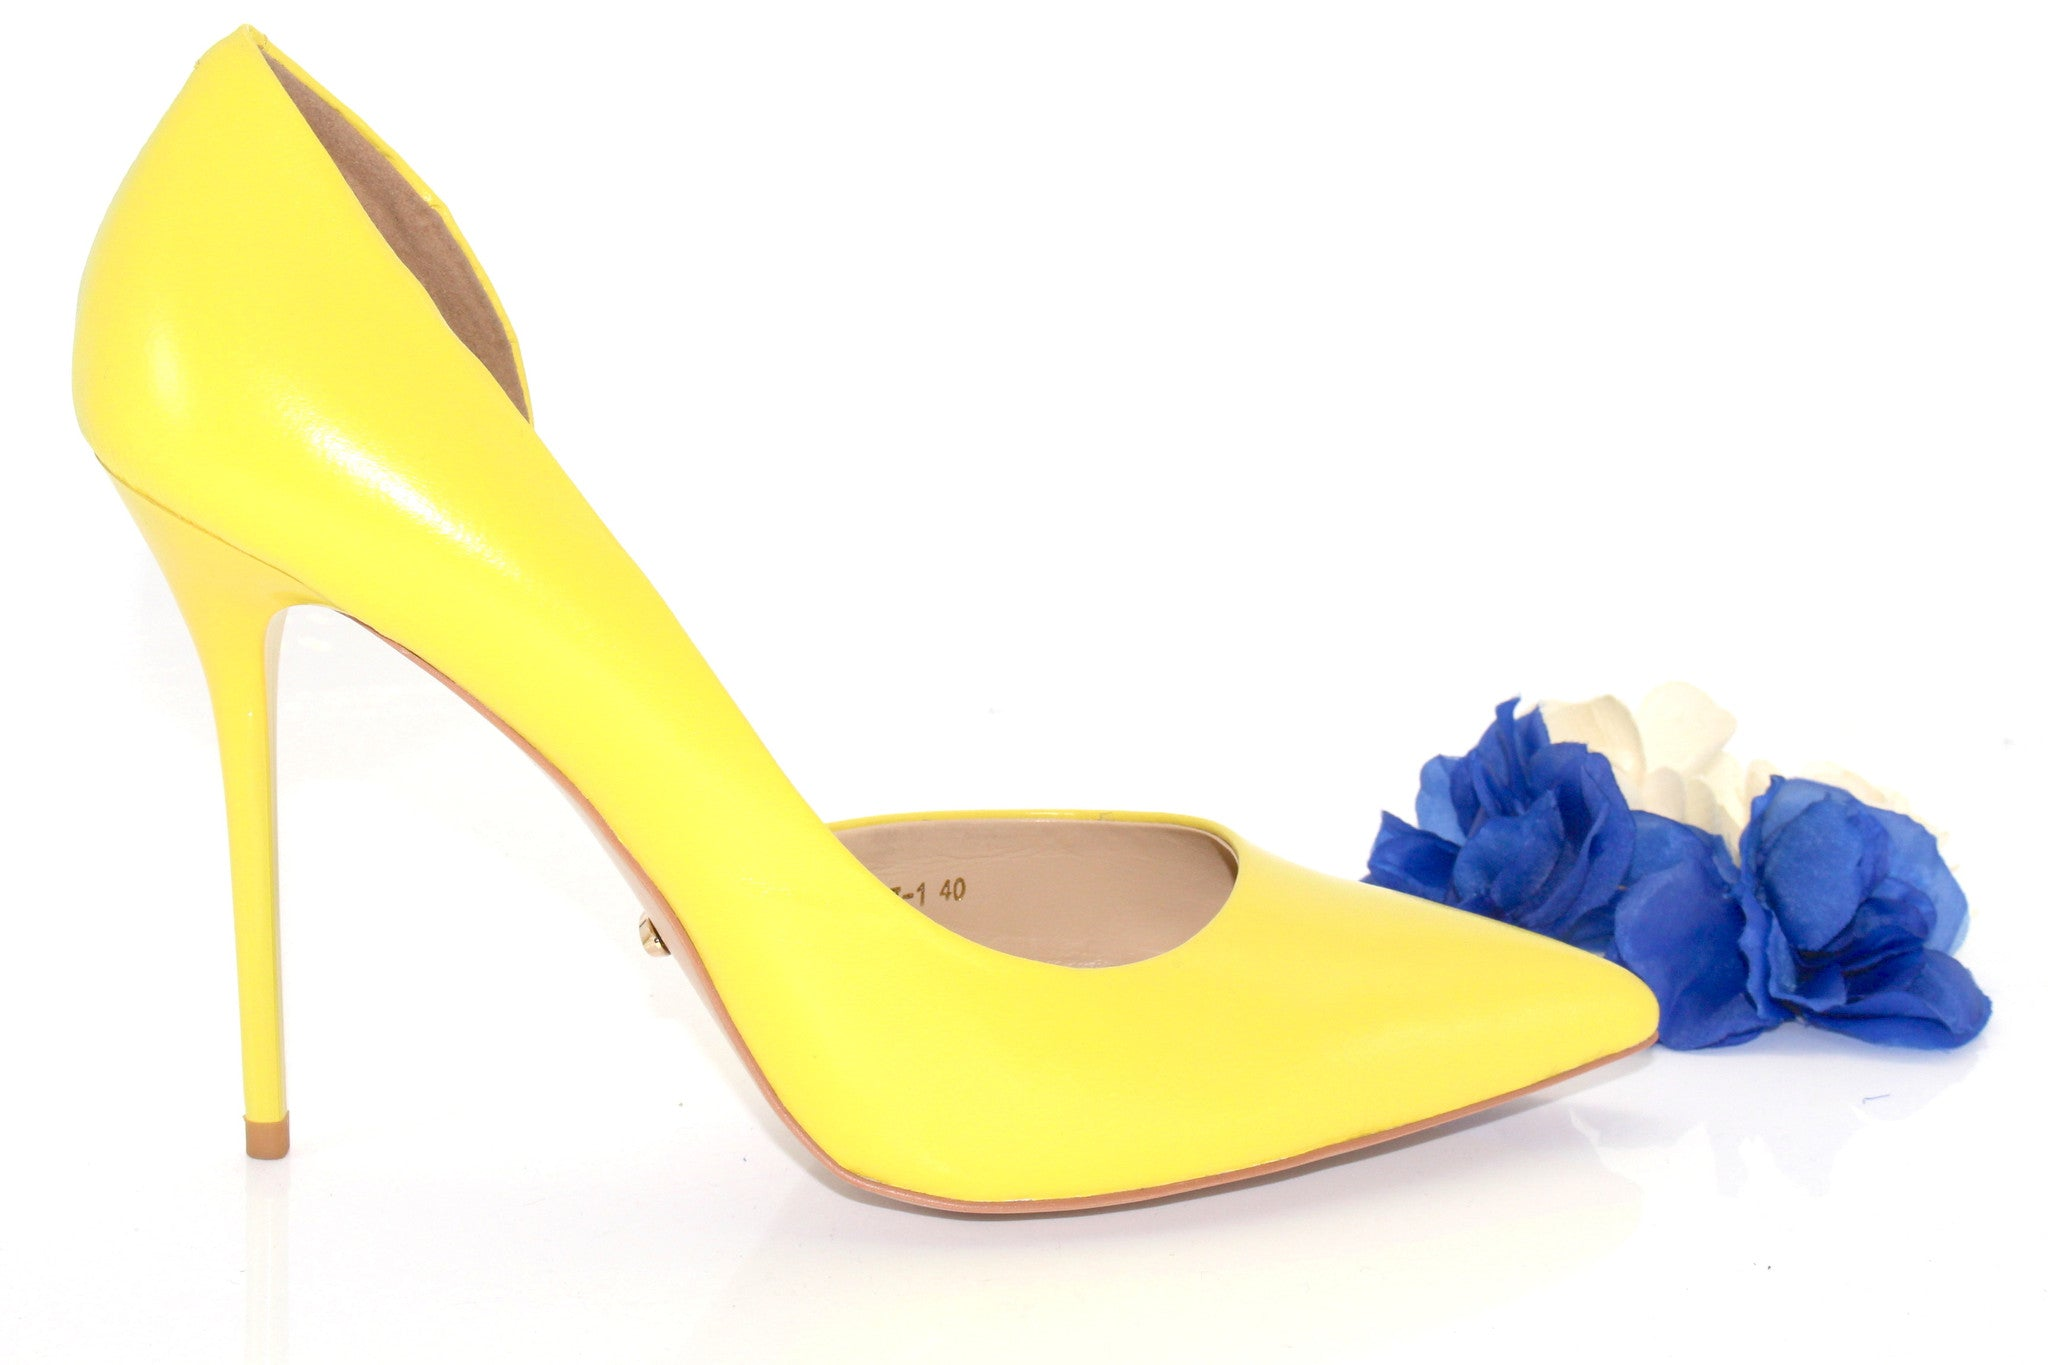 d4cef614b8 ... 1; Boutique Fashion - Yellow Pointed Toe Pumps - Angelina Voloshina - AV  Heels - 2 ...